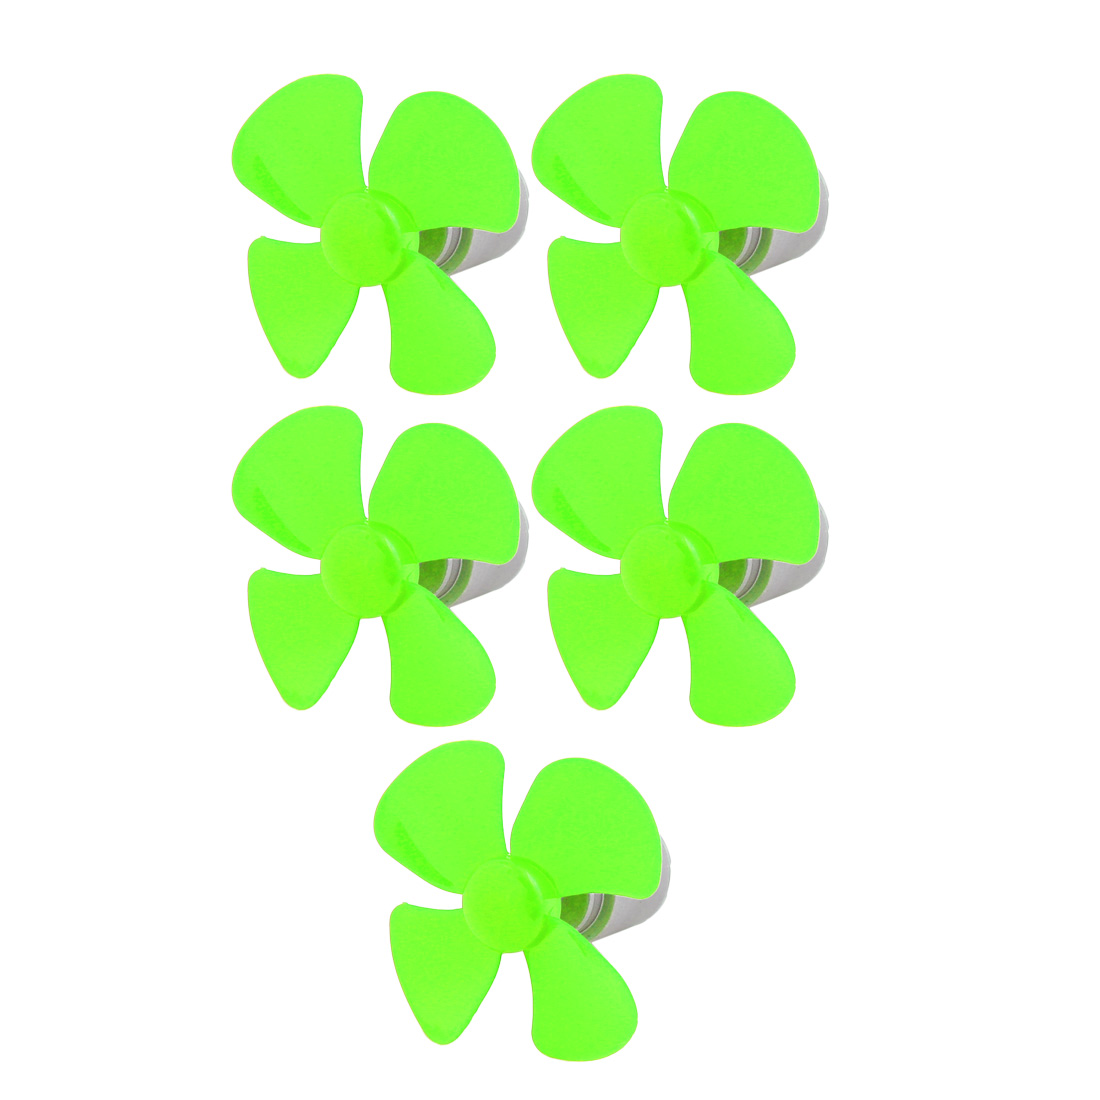 5pcs DC 3V 0.13A 9000RPM Strong Force Motor 4 Blades 56mm Green Propeller for RC Aircraft